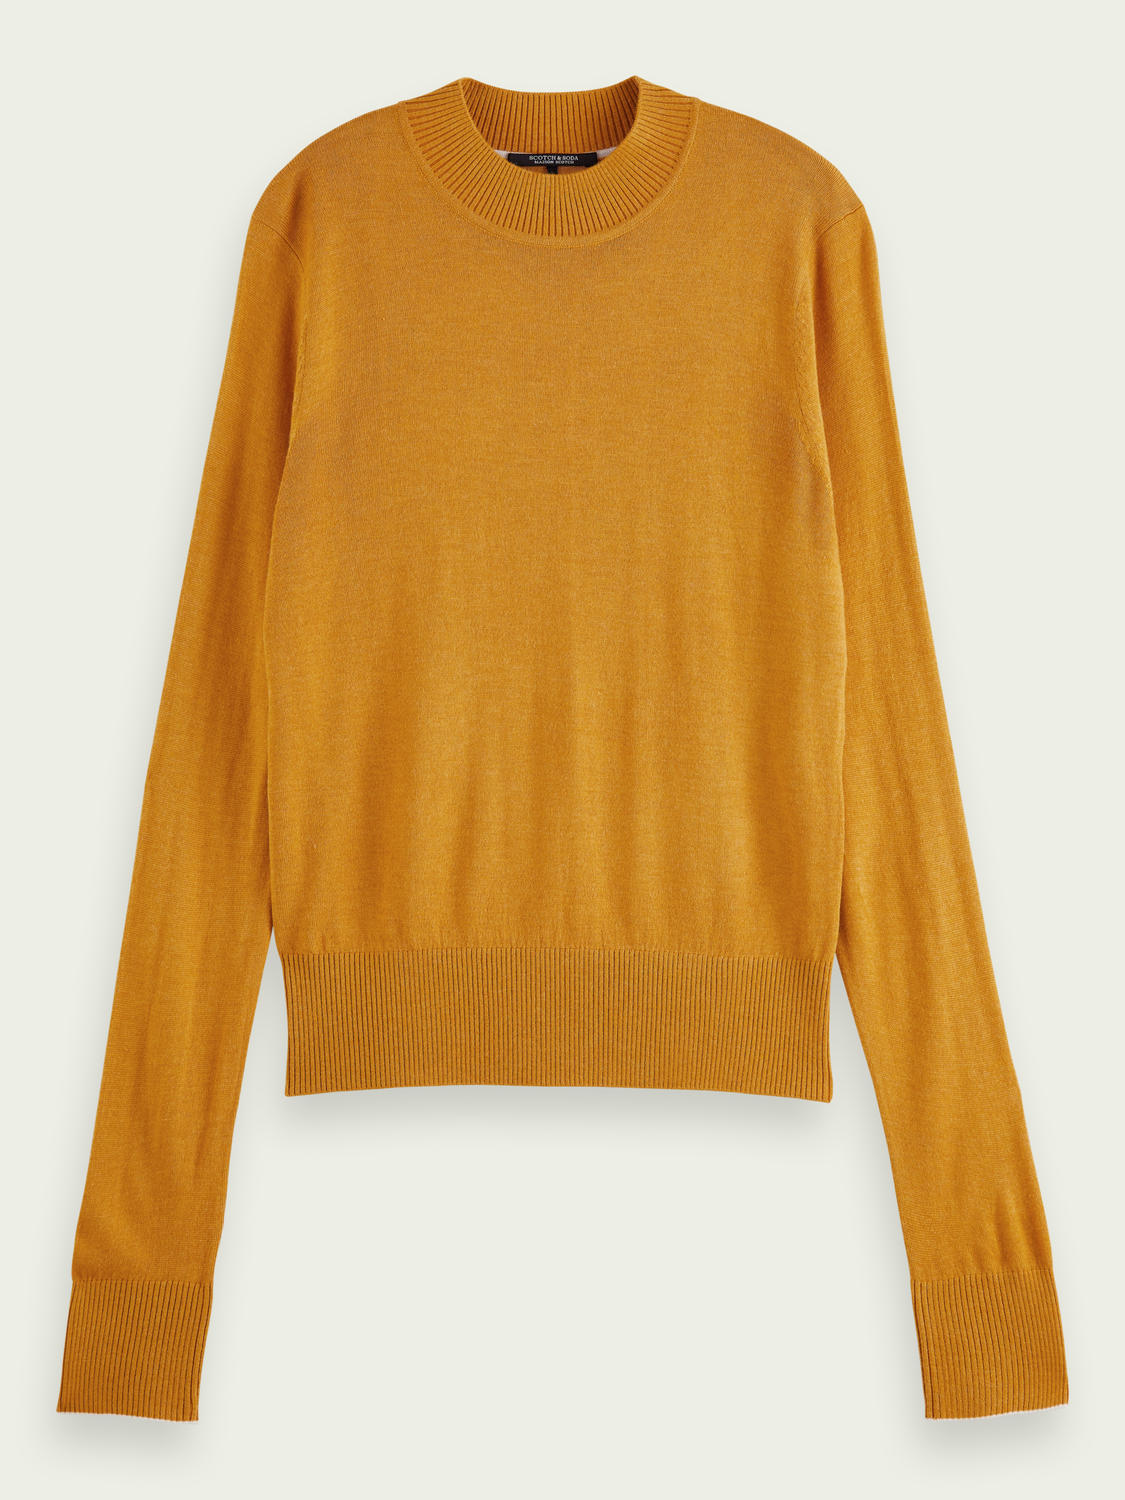 Dames Sweater met ronde hals